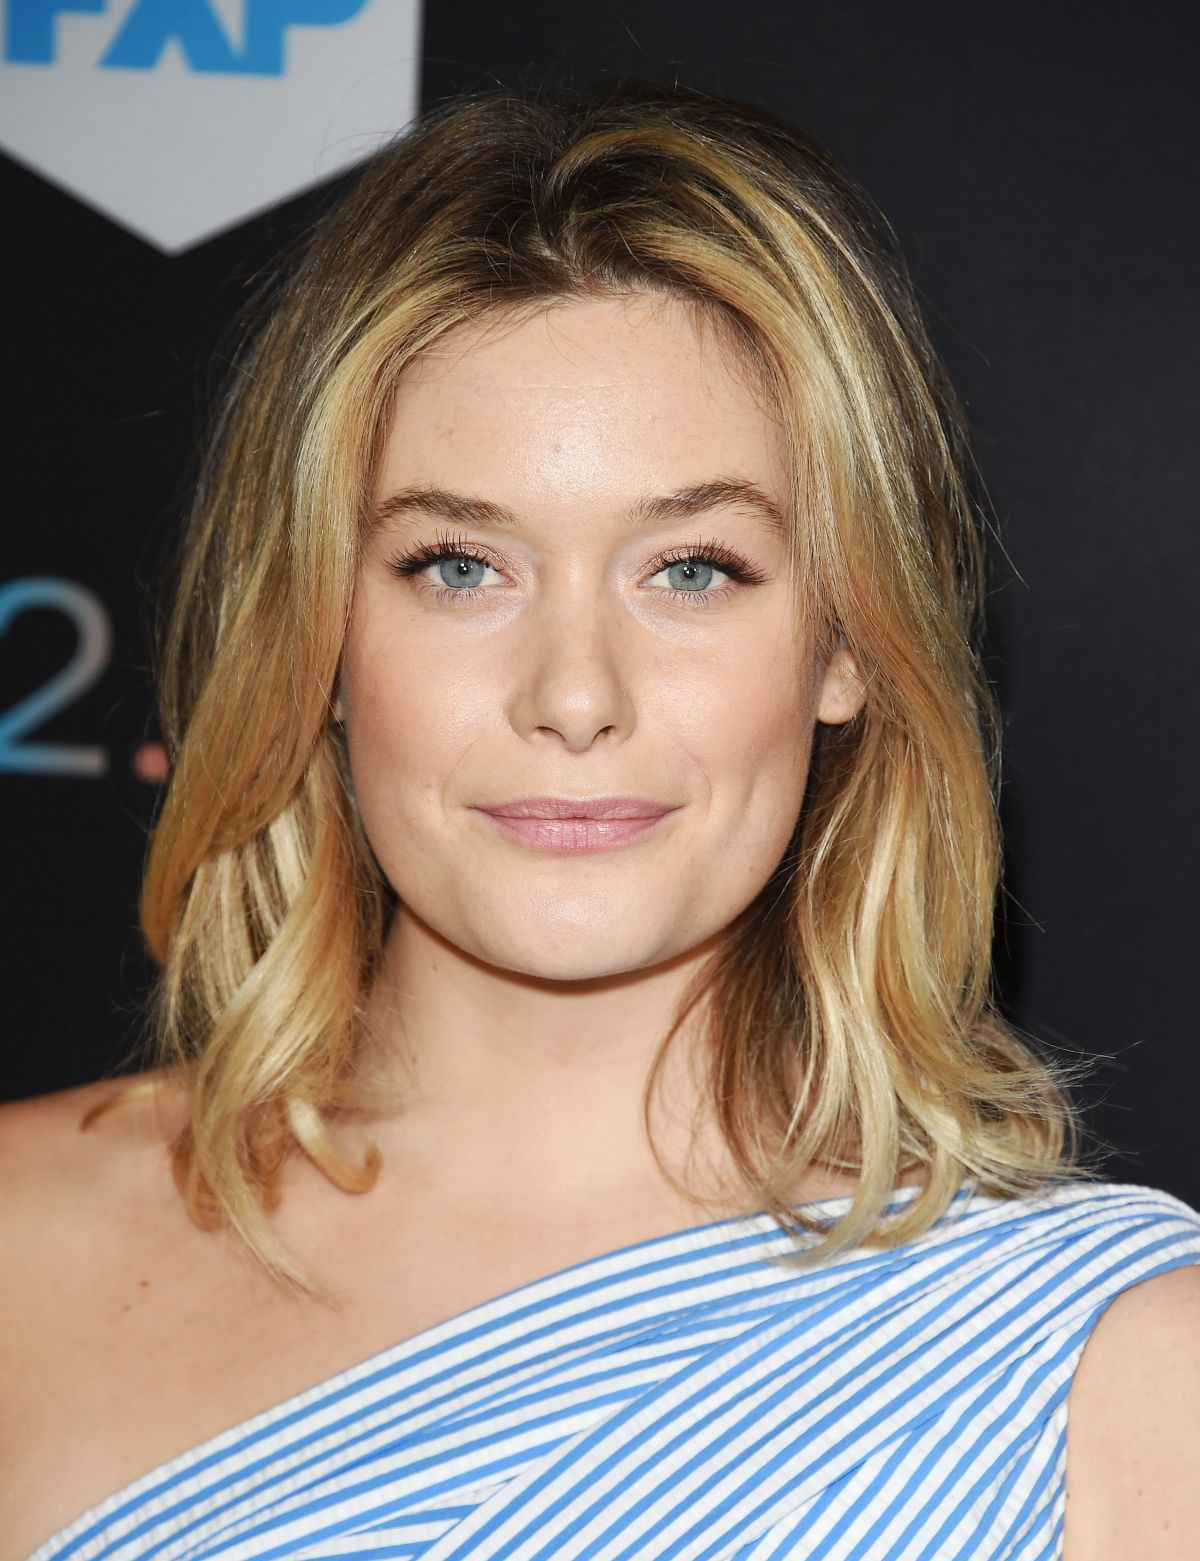 rachel keller height weightrachel keller height, rachel keller photo, rachel keller фото, rachel keller height weight, rachel keller photoshoot, rachel keller supernatural, rachel keller 2017, rachel keller dance, rachel keller listal, rachel keller and dan stevens, rachel keller fan, rachel keller 2016, rachel keller insta, rachel keller foto, rachel keller фильмы, rachel keller from fargo, rachel keller looks like, rachel keller site, rachel keller gallery, rachel keller wiki